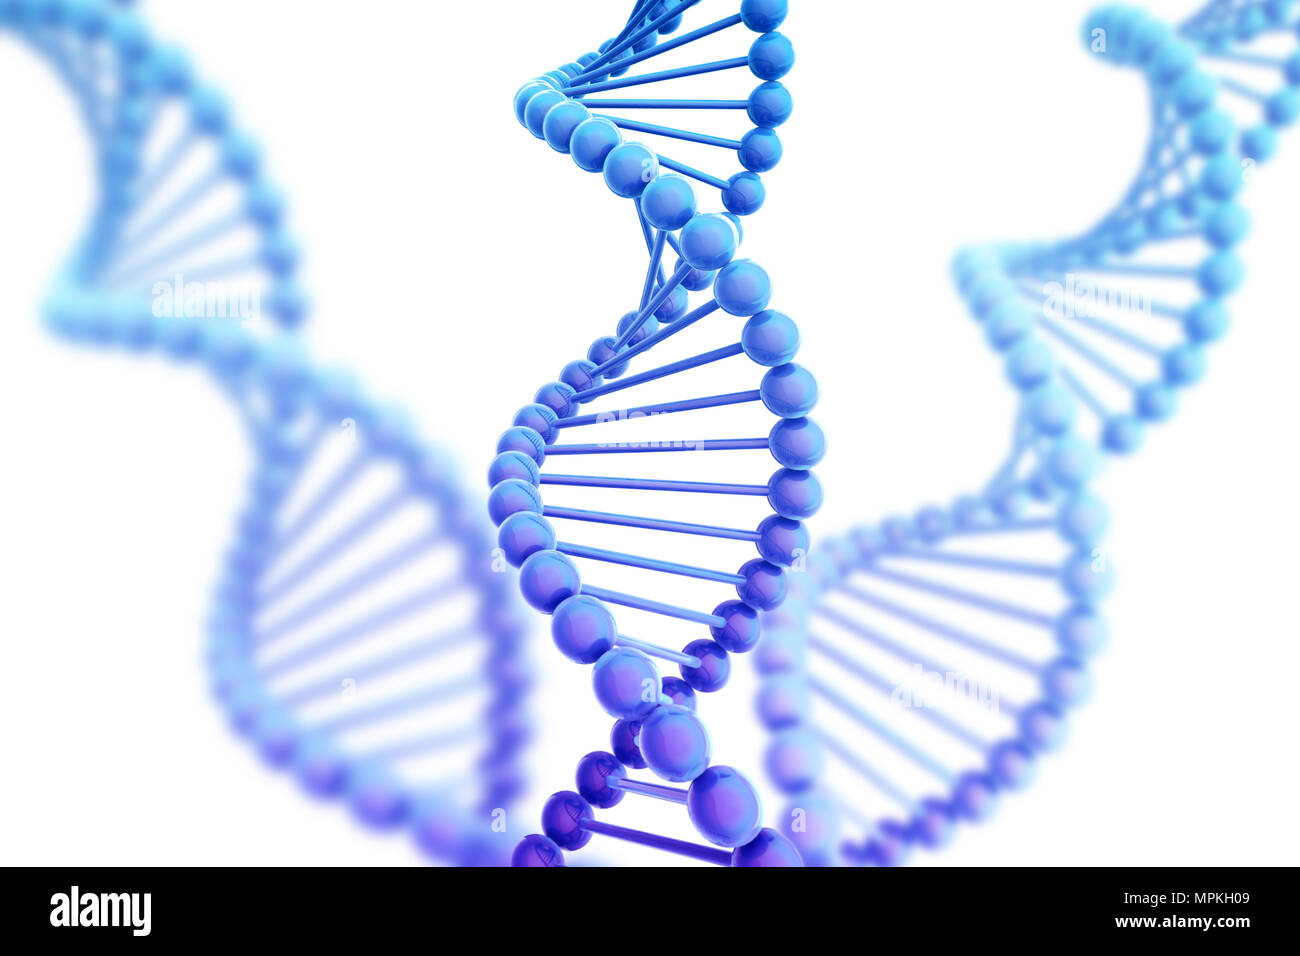 DNA Helix Background Isolated on White 3D Illustration Stock Photo